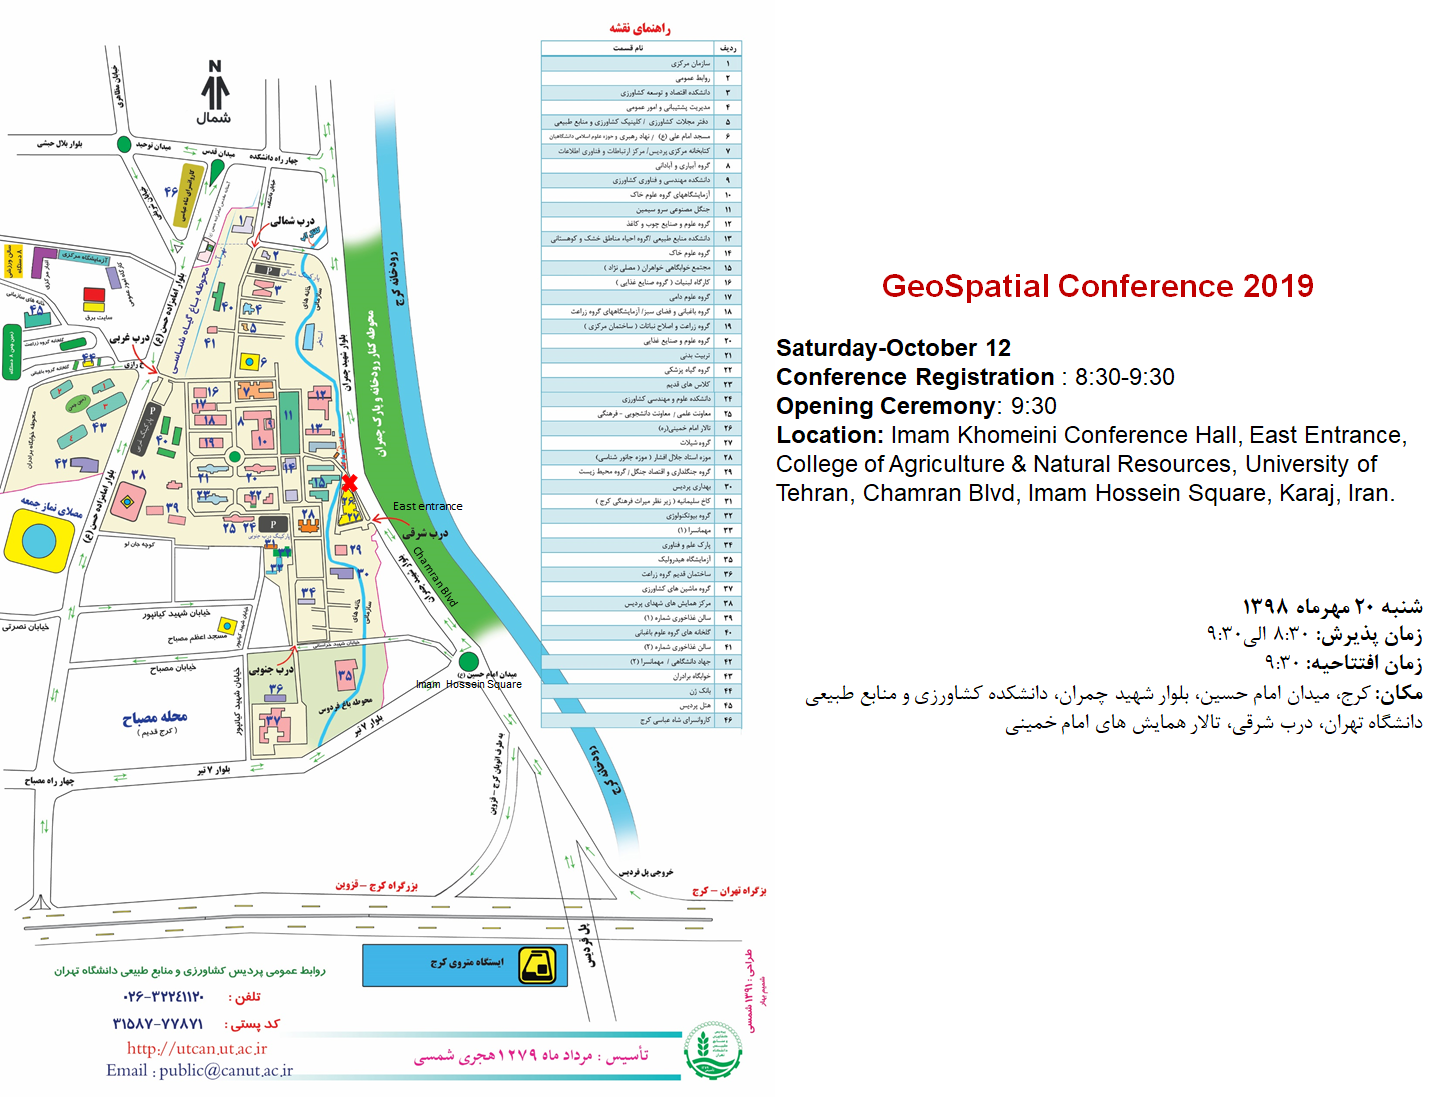 Conference Location